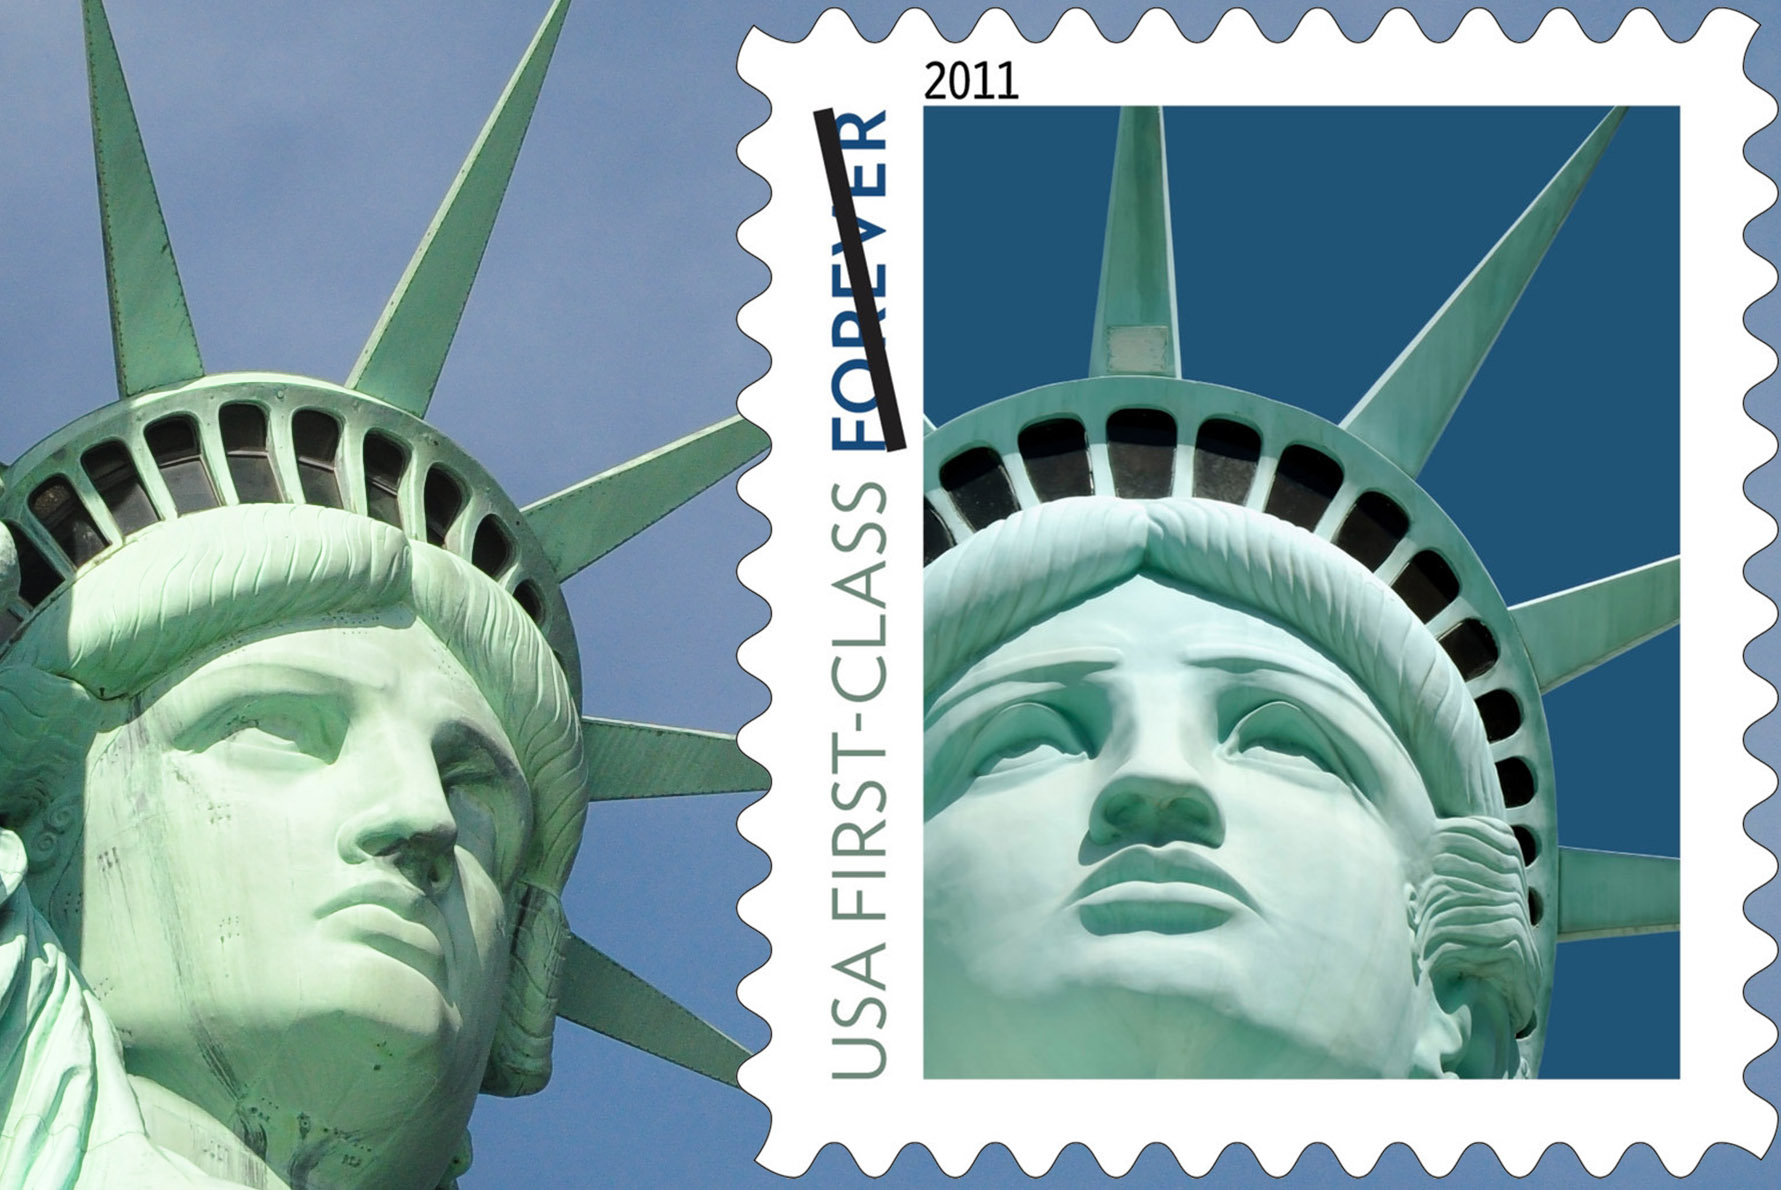 The real Statue of Liberty and the stamp, which shows a replica